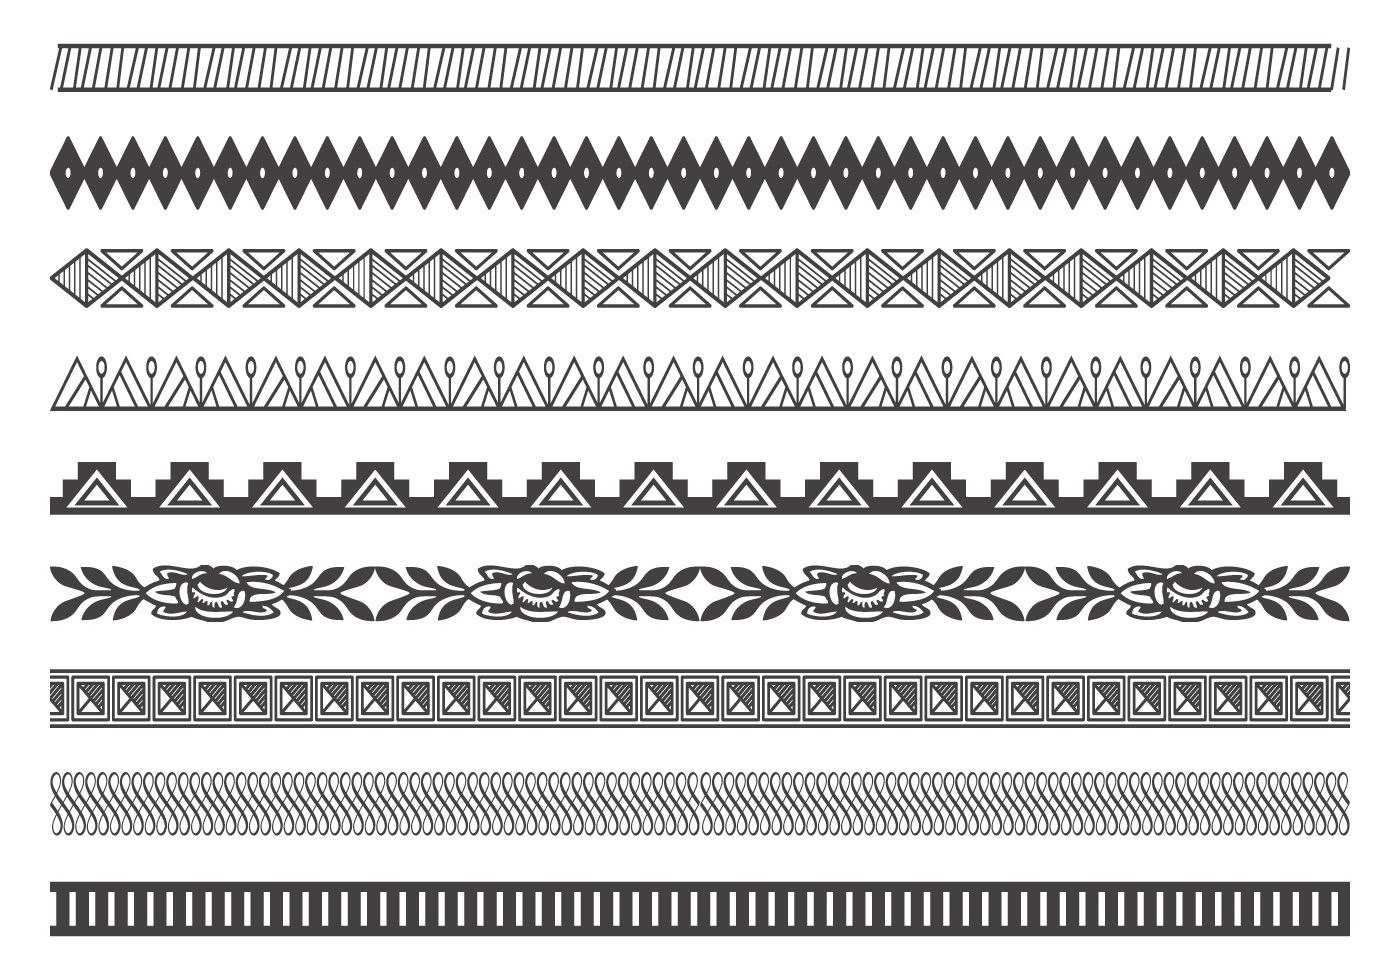 This collection includes hi res decorative borderdivider brushes